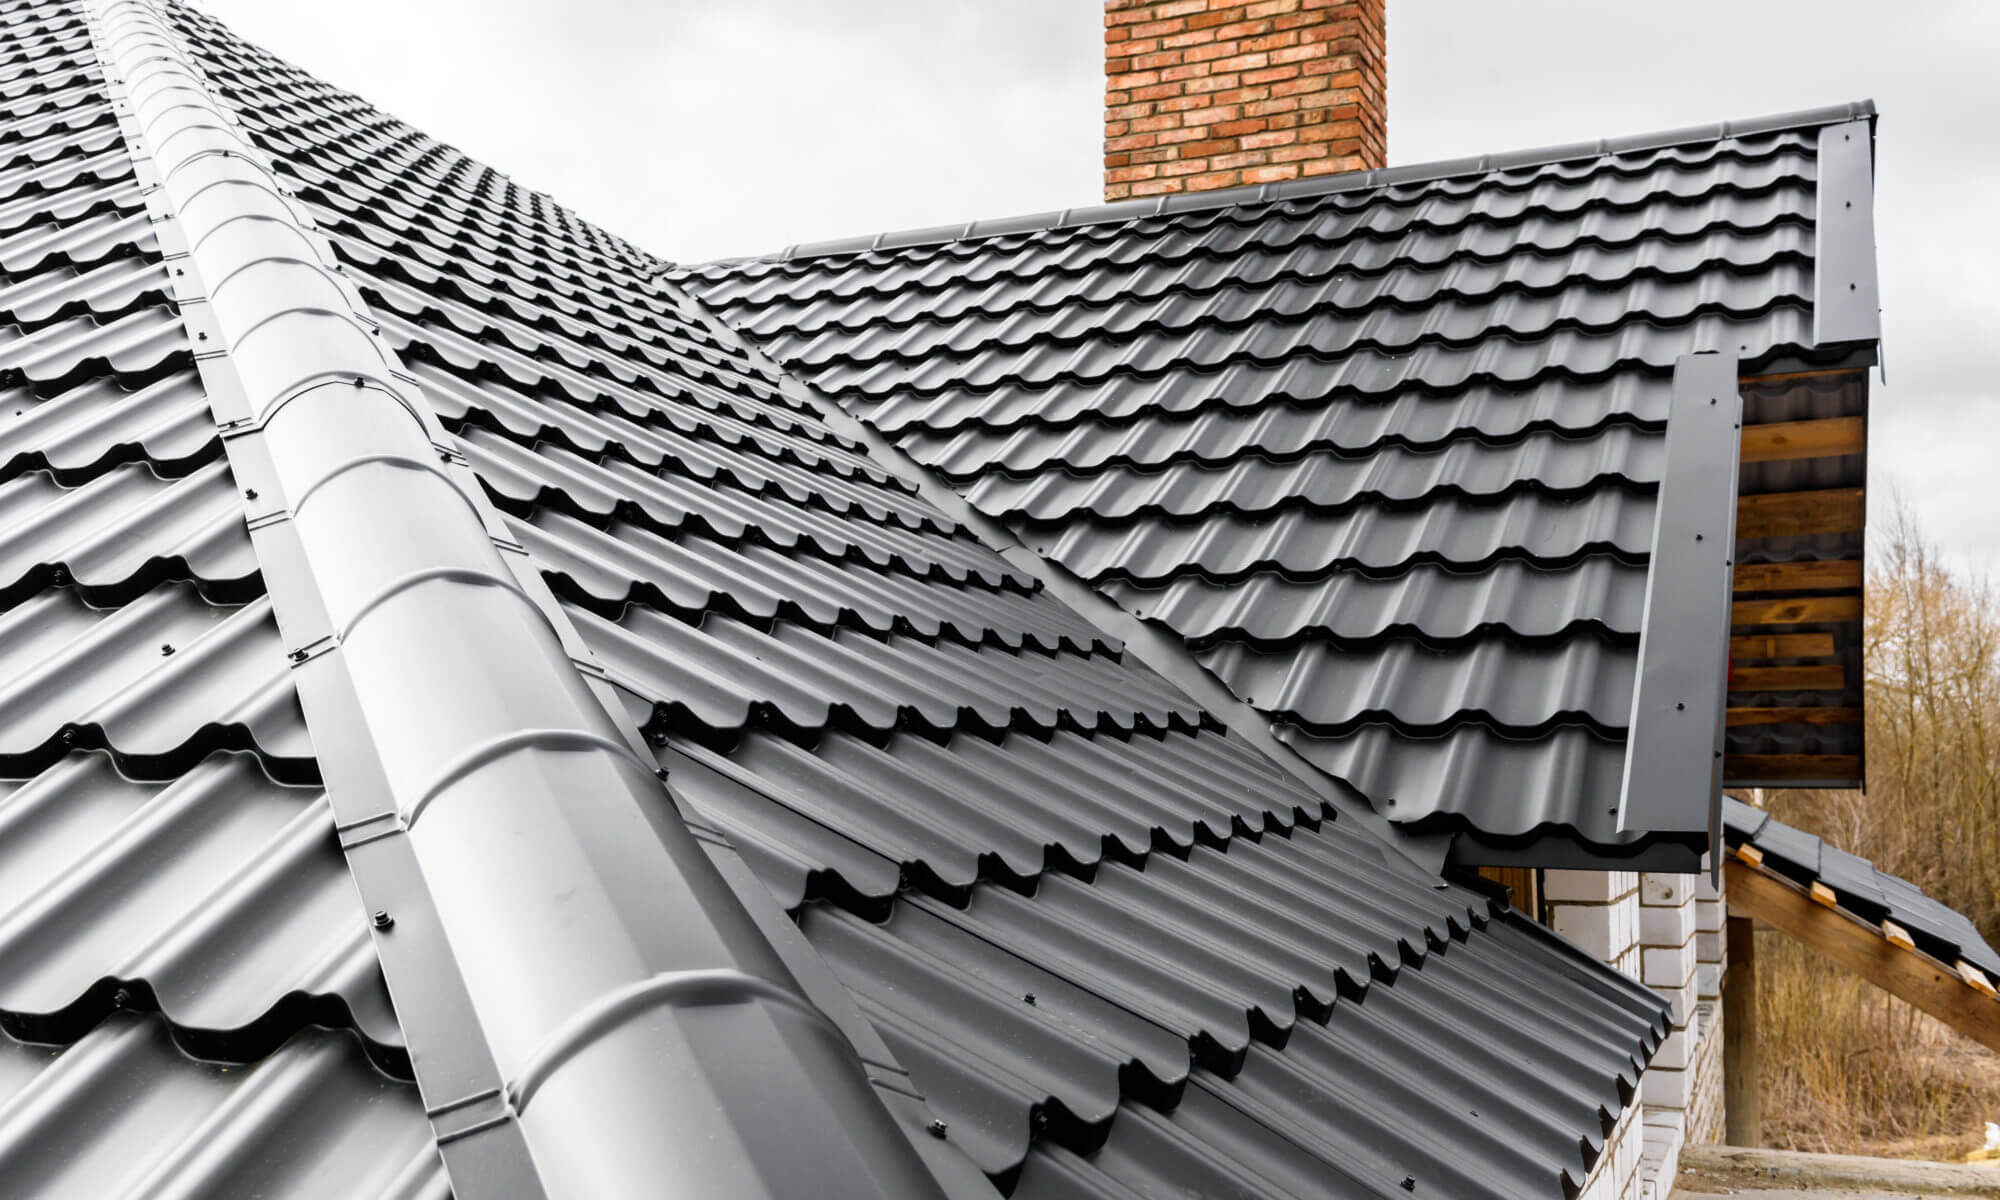 Explore The Pros Cons Of Metal Roofing For Taking An Educated Roofing Decision Interior Design Design News And Architecture Trends